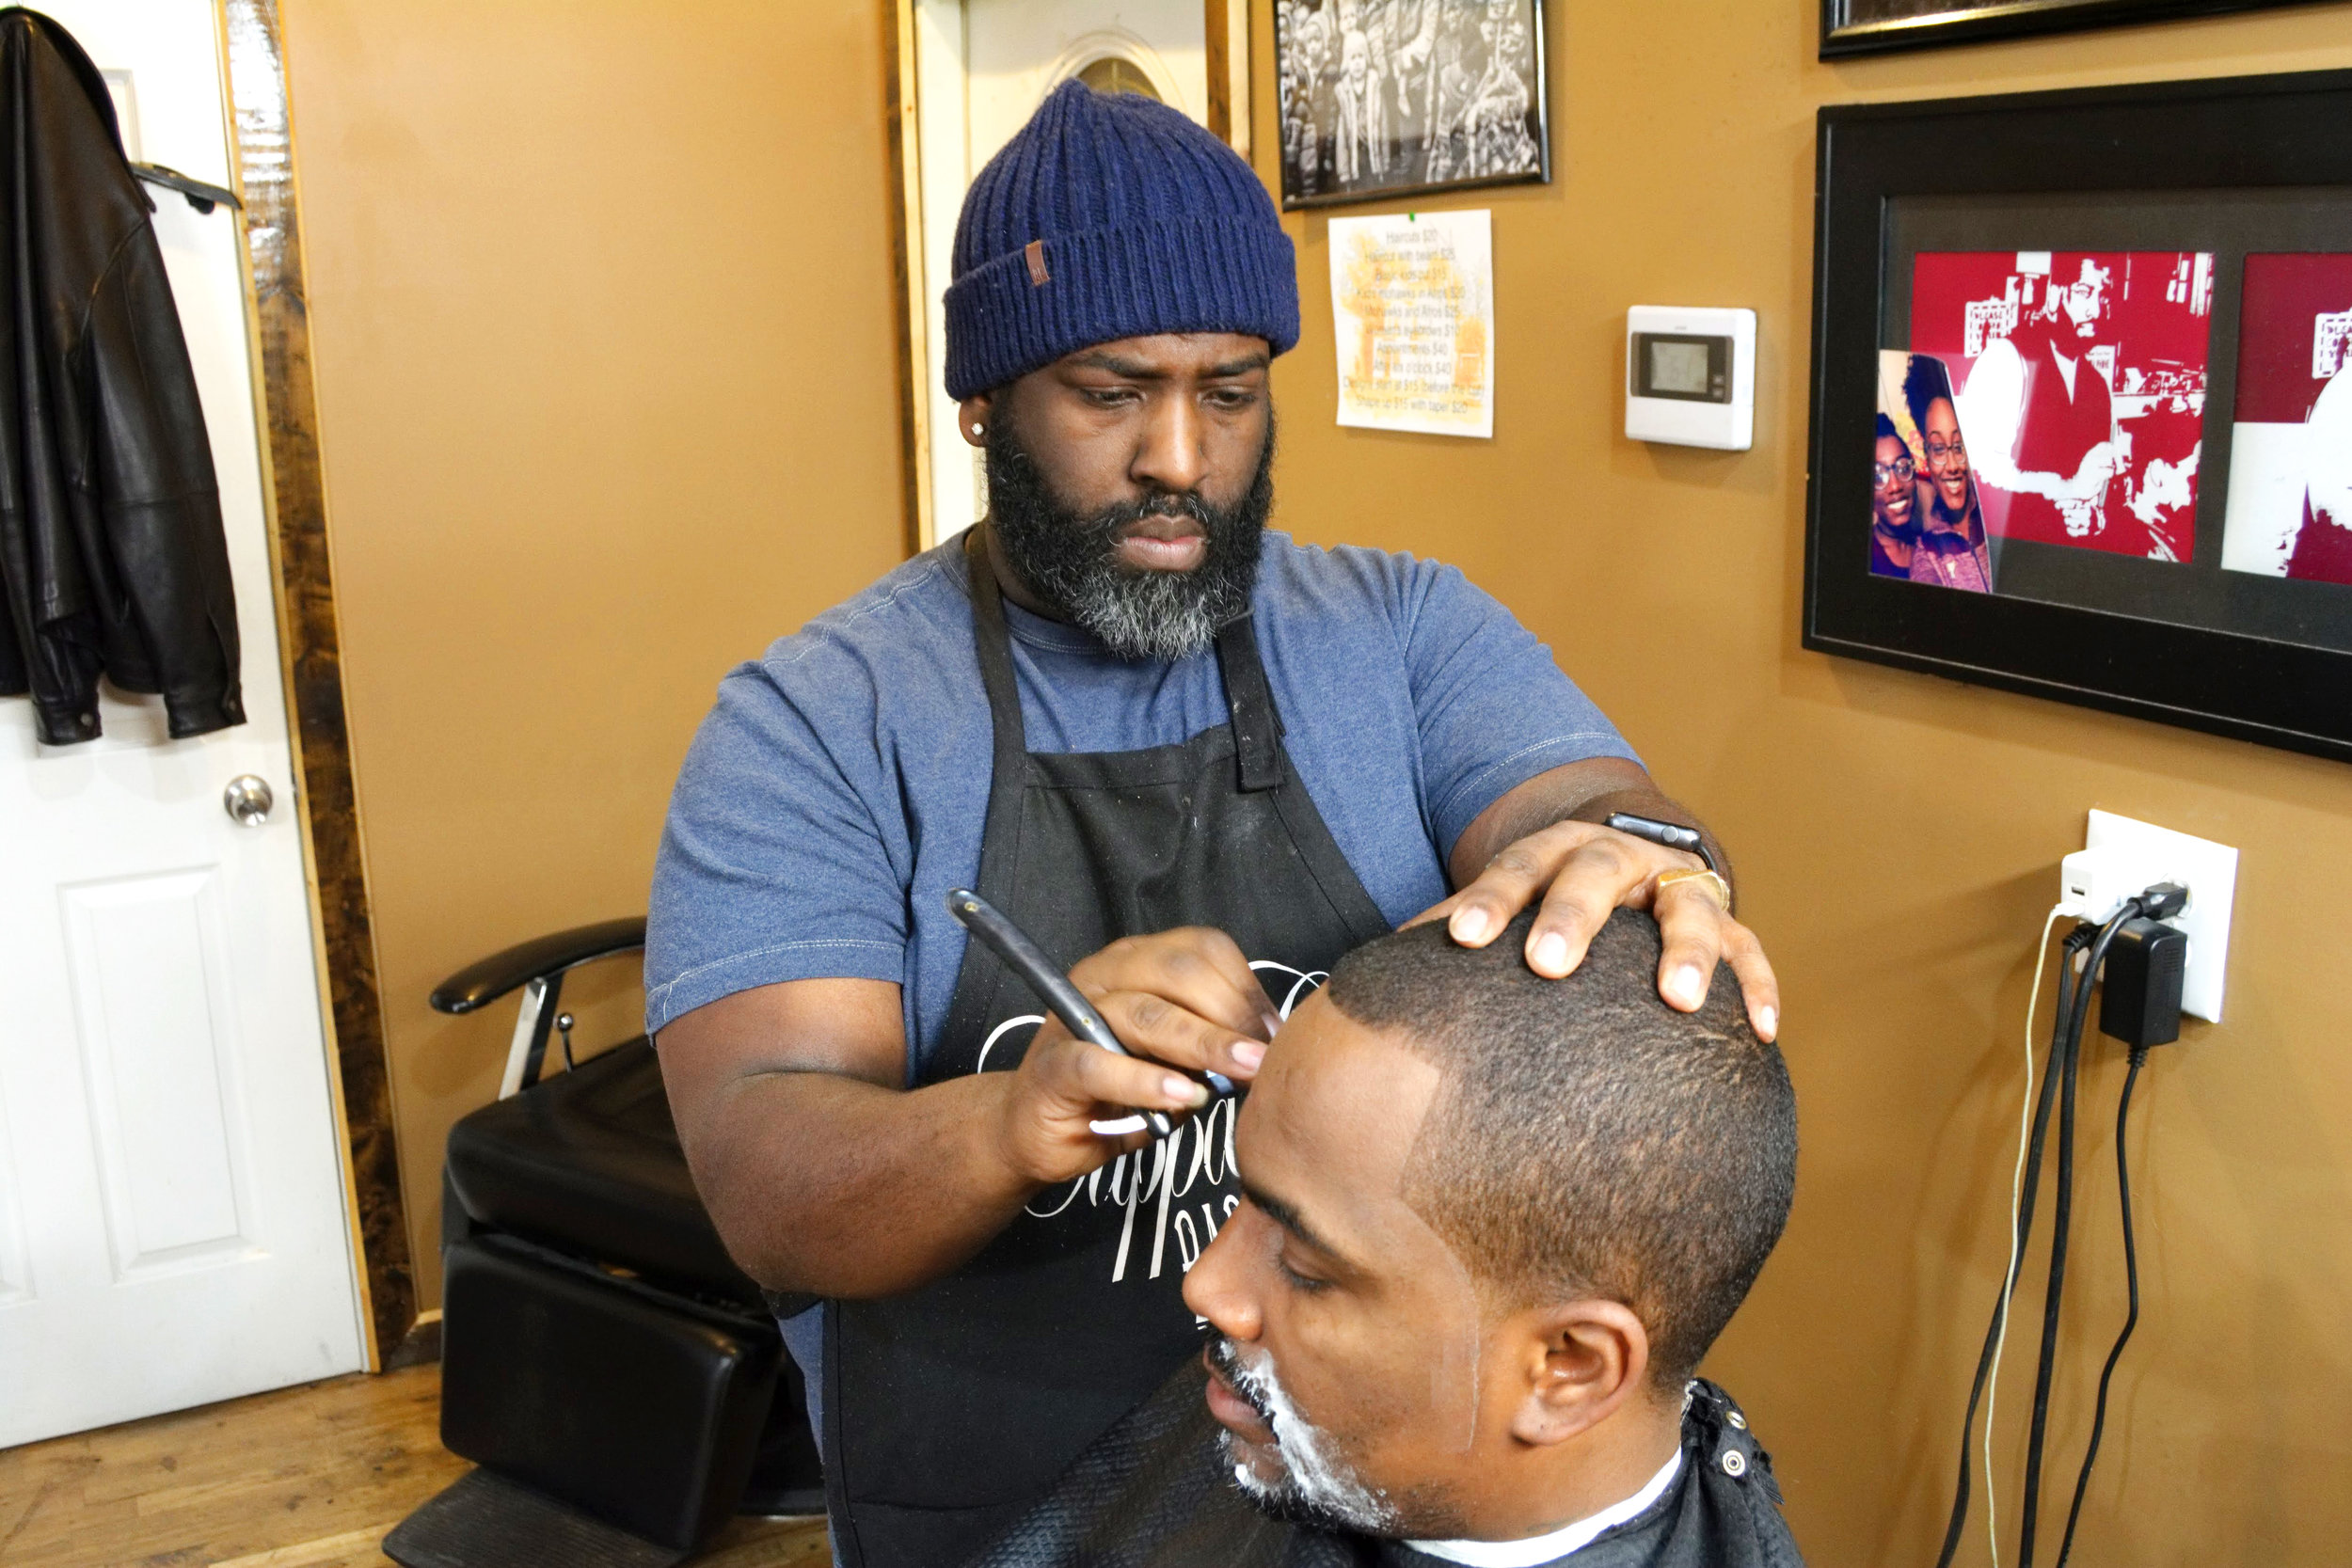 """""""My defining moment in wanting to become a barber is when I was taking my daughter's mom to her house and we rode past a barber shop. It belonged to this well known barber named Big Don. He was working at the time and it was sold out. He had the nicest car in the parking lot. That steered me into thinking that I could make a living with this. So many people miss out on their gifts. I had a gift, dealing with these clippers about 23 years ago.  Riding past Haskin's, right across Victory Park did it for me. I think that was the moment I knew that I needed to be in the barber shop. My first week in the shop, I knew I was going to make it. The second week was kinda rough. The first week, I came in at the right time. I started on a Thursday, it was busy. It was a bunch of walk-ins and the shop was on Broadway. That started it for me and let me know that I'm gonna be alright at this.  What motivates me is watching younger barbers, that used to be customers, turning into the talked about barber. I've had the pleasure to witness that a couple of times. You know, guys that I've seen go to barber school and now they're the household name. That motivates me.  I remember walking in here and no one could see my vision. The barber that moved in here with me couldn't see it either. He was like, 'Man, we ain't gonna make no money, right here!'. You can make money anywhere, it's you. It's not the location, it's you. Now, location plays a part on the traffic but once you get a good barber, you don't want to have to keep traveling around, trying to find somebody else.  My service to the community has been positive. There's been a lot of guys that have come to me for advice. I've even came in here needing advice. I've cut a lot of prominent people over the years. I ask questions. If I don't know something, I'm asking questions and a lot of people have helped me. One of the most humbling experiences that I've had is when we moved over here. All I had was money to buy the building but no"""